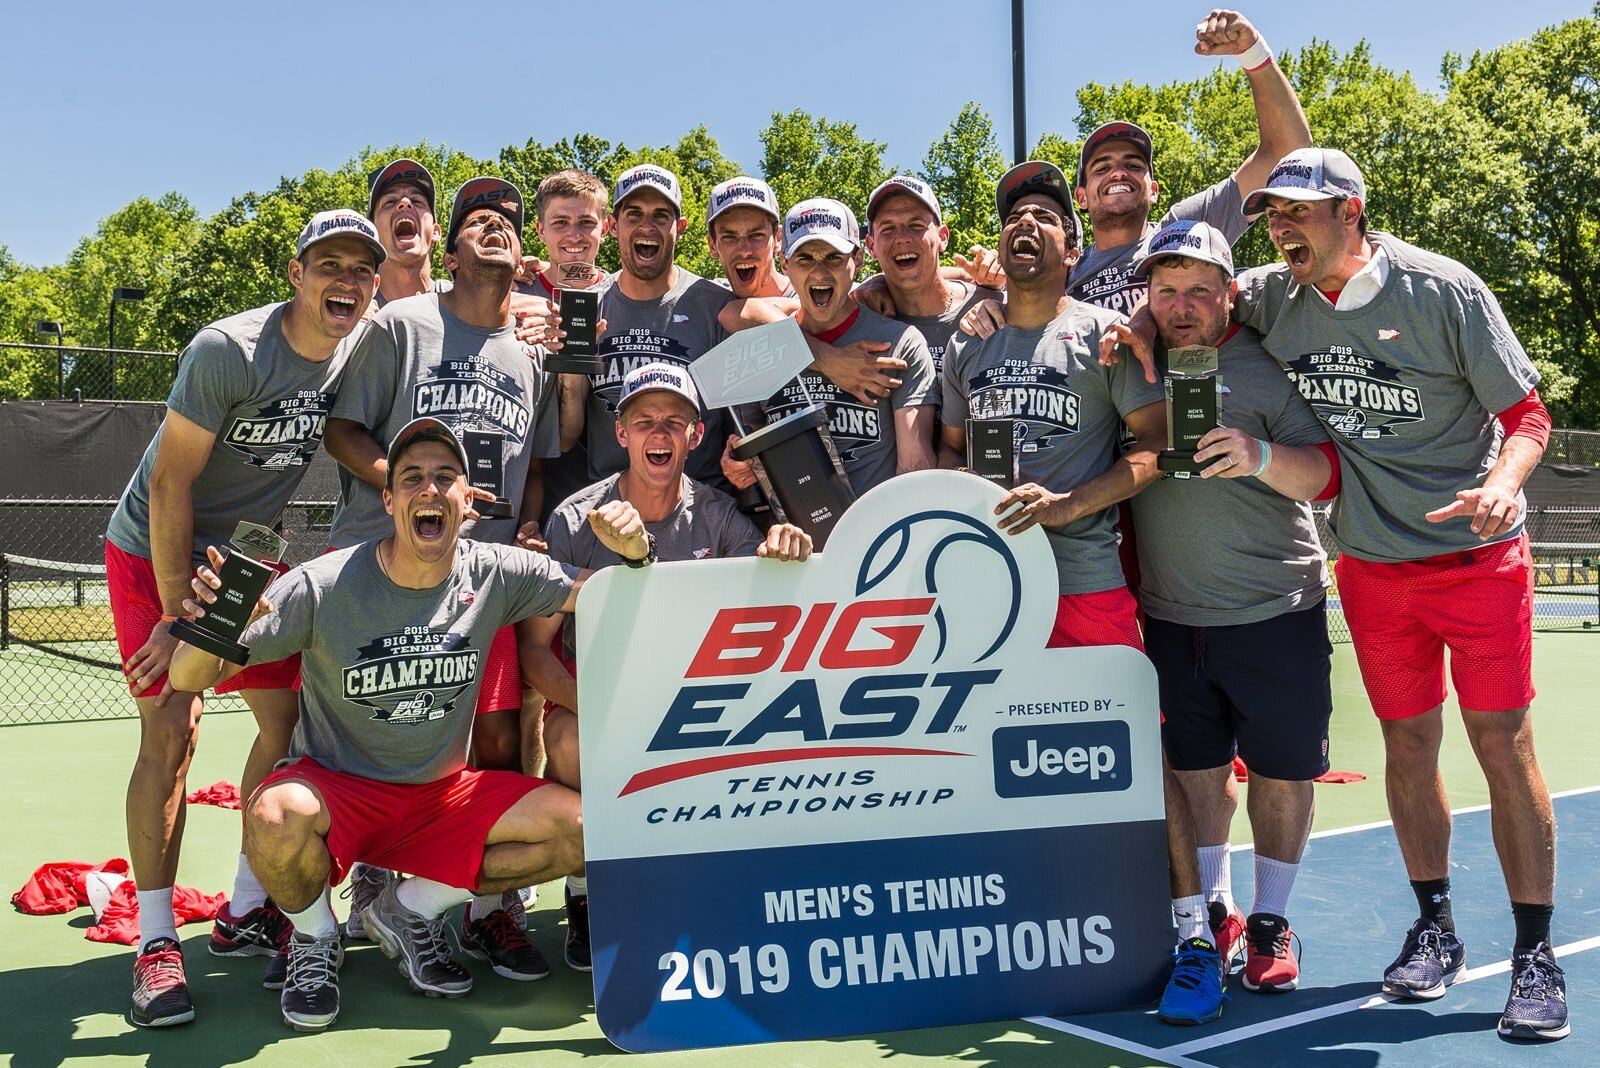 Dillon Pottish, standing directly behind the Big East sign with the Big East Championship trophy, along with Richard Sipala, standing to Pottish's right, helped lead the St. John's men's tennis team this past season as head and assistant coaches.